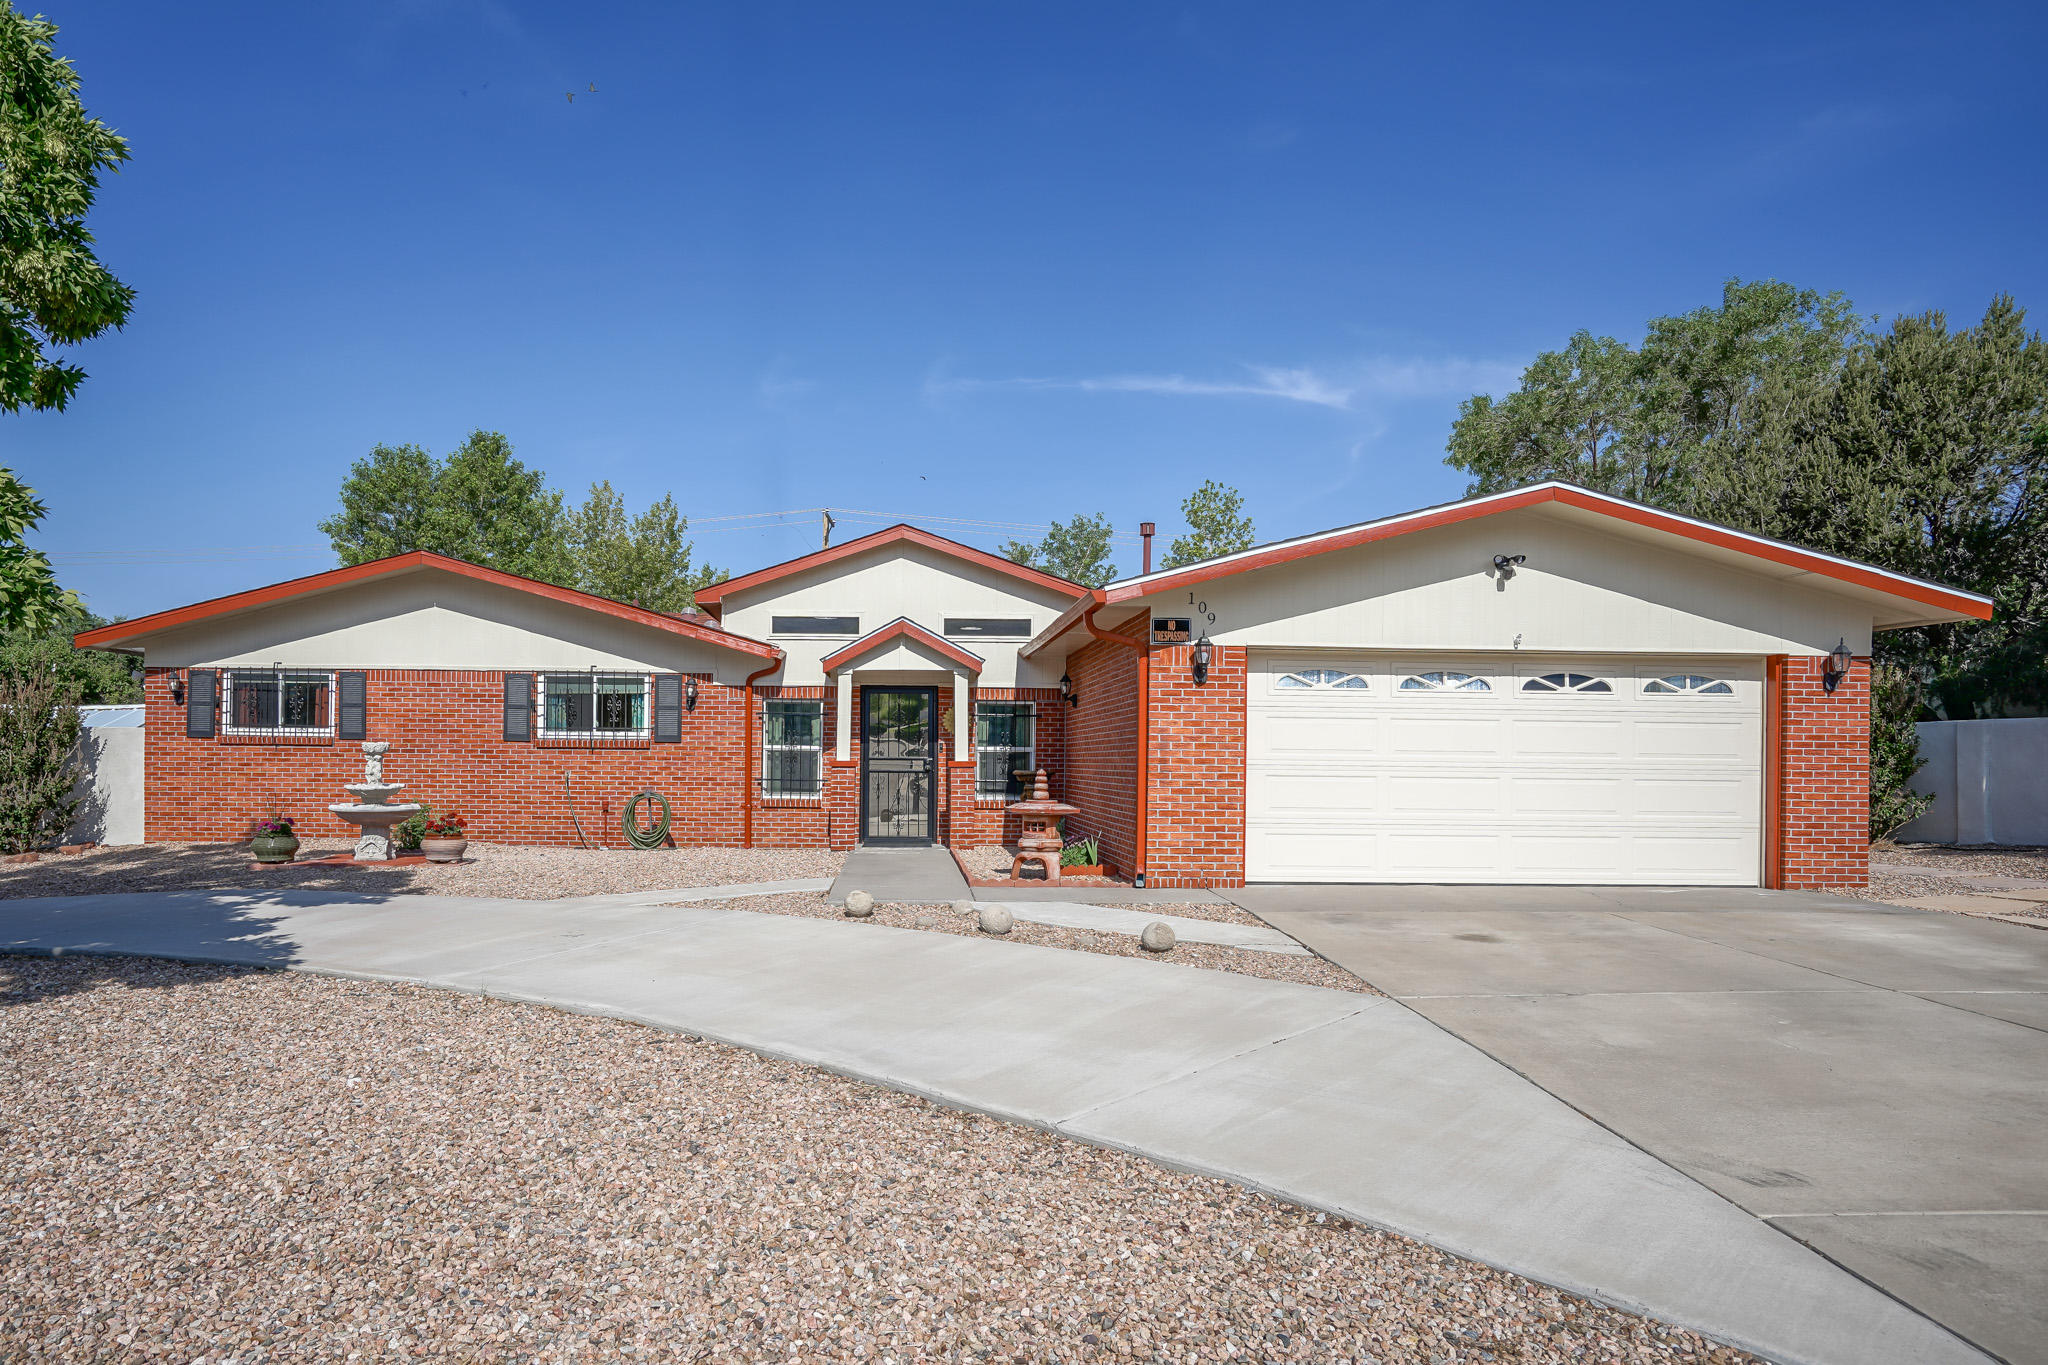 Single Story Home located in the foothills in Supper Rock! Pride of ownership shows throughout this home inside and out! Charming Curb appeal with hand-stained and painted brick, a large circular driveway, and room for an RV! Situated on 1/3 of an acre! Updated Custom Designed kitchen with pull-out drawers and accessories, open picture cabinets, large pantry, and stainless appliances! Rest easy knowing that a NEW Roof was installed a year ago and new Champion windows two months ago! Unwind in the tranquil backyard oasis with a lush green lawn, a lower-tiered section w/ a pond, and 13 mature shade trees! Extra room to store items in the two storage sheds in the backyard! The front courtyard has been enclosed into a sunroom. Backyard access! Quick access to I-40! Minutes from the foothills!